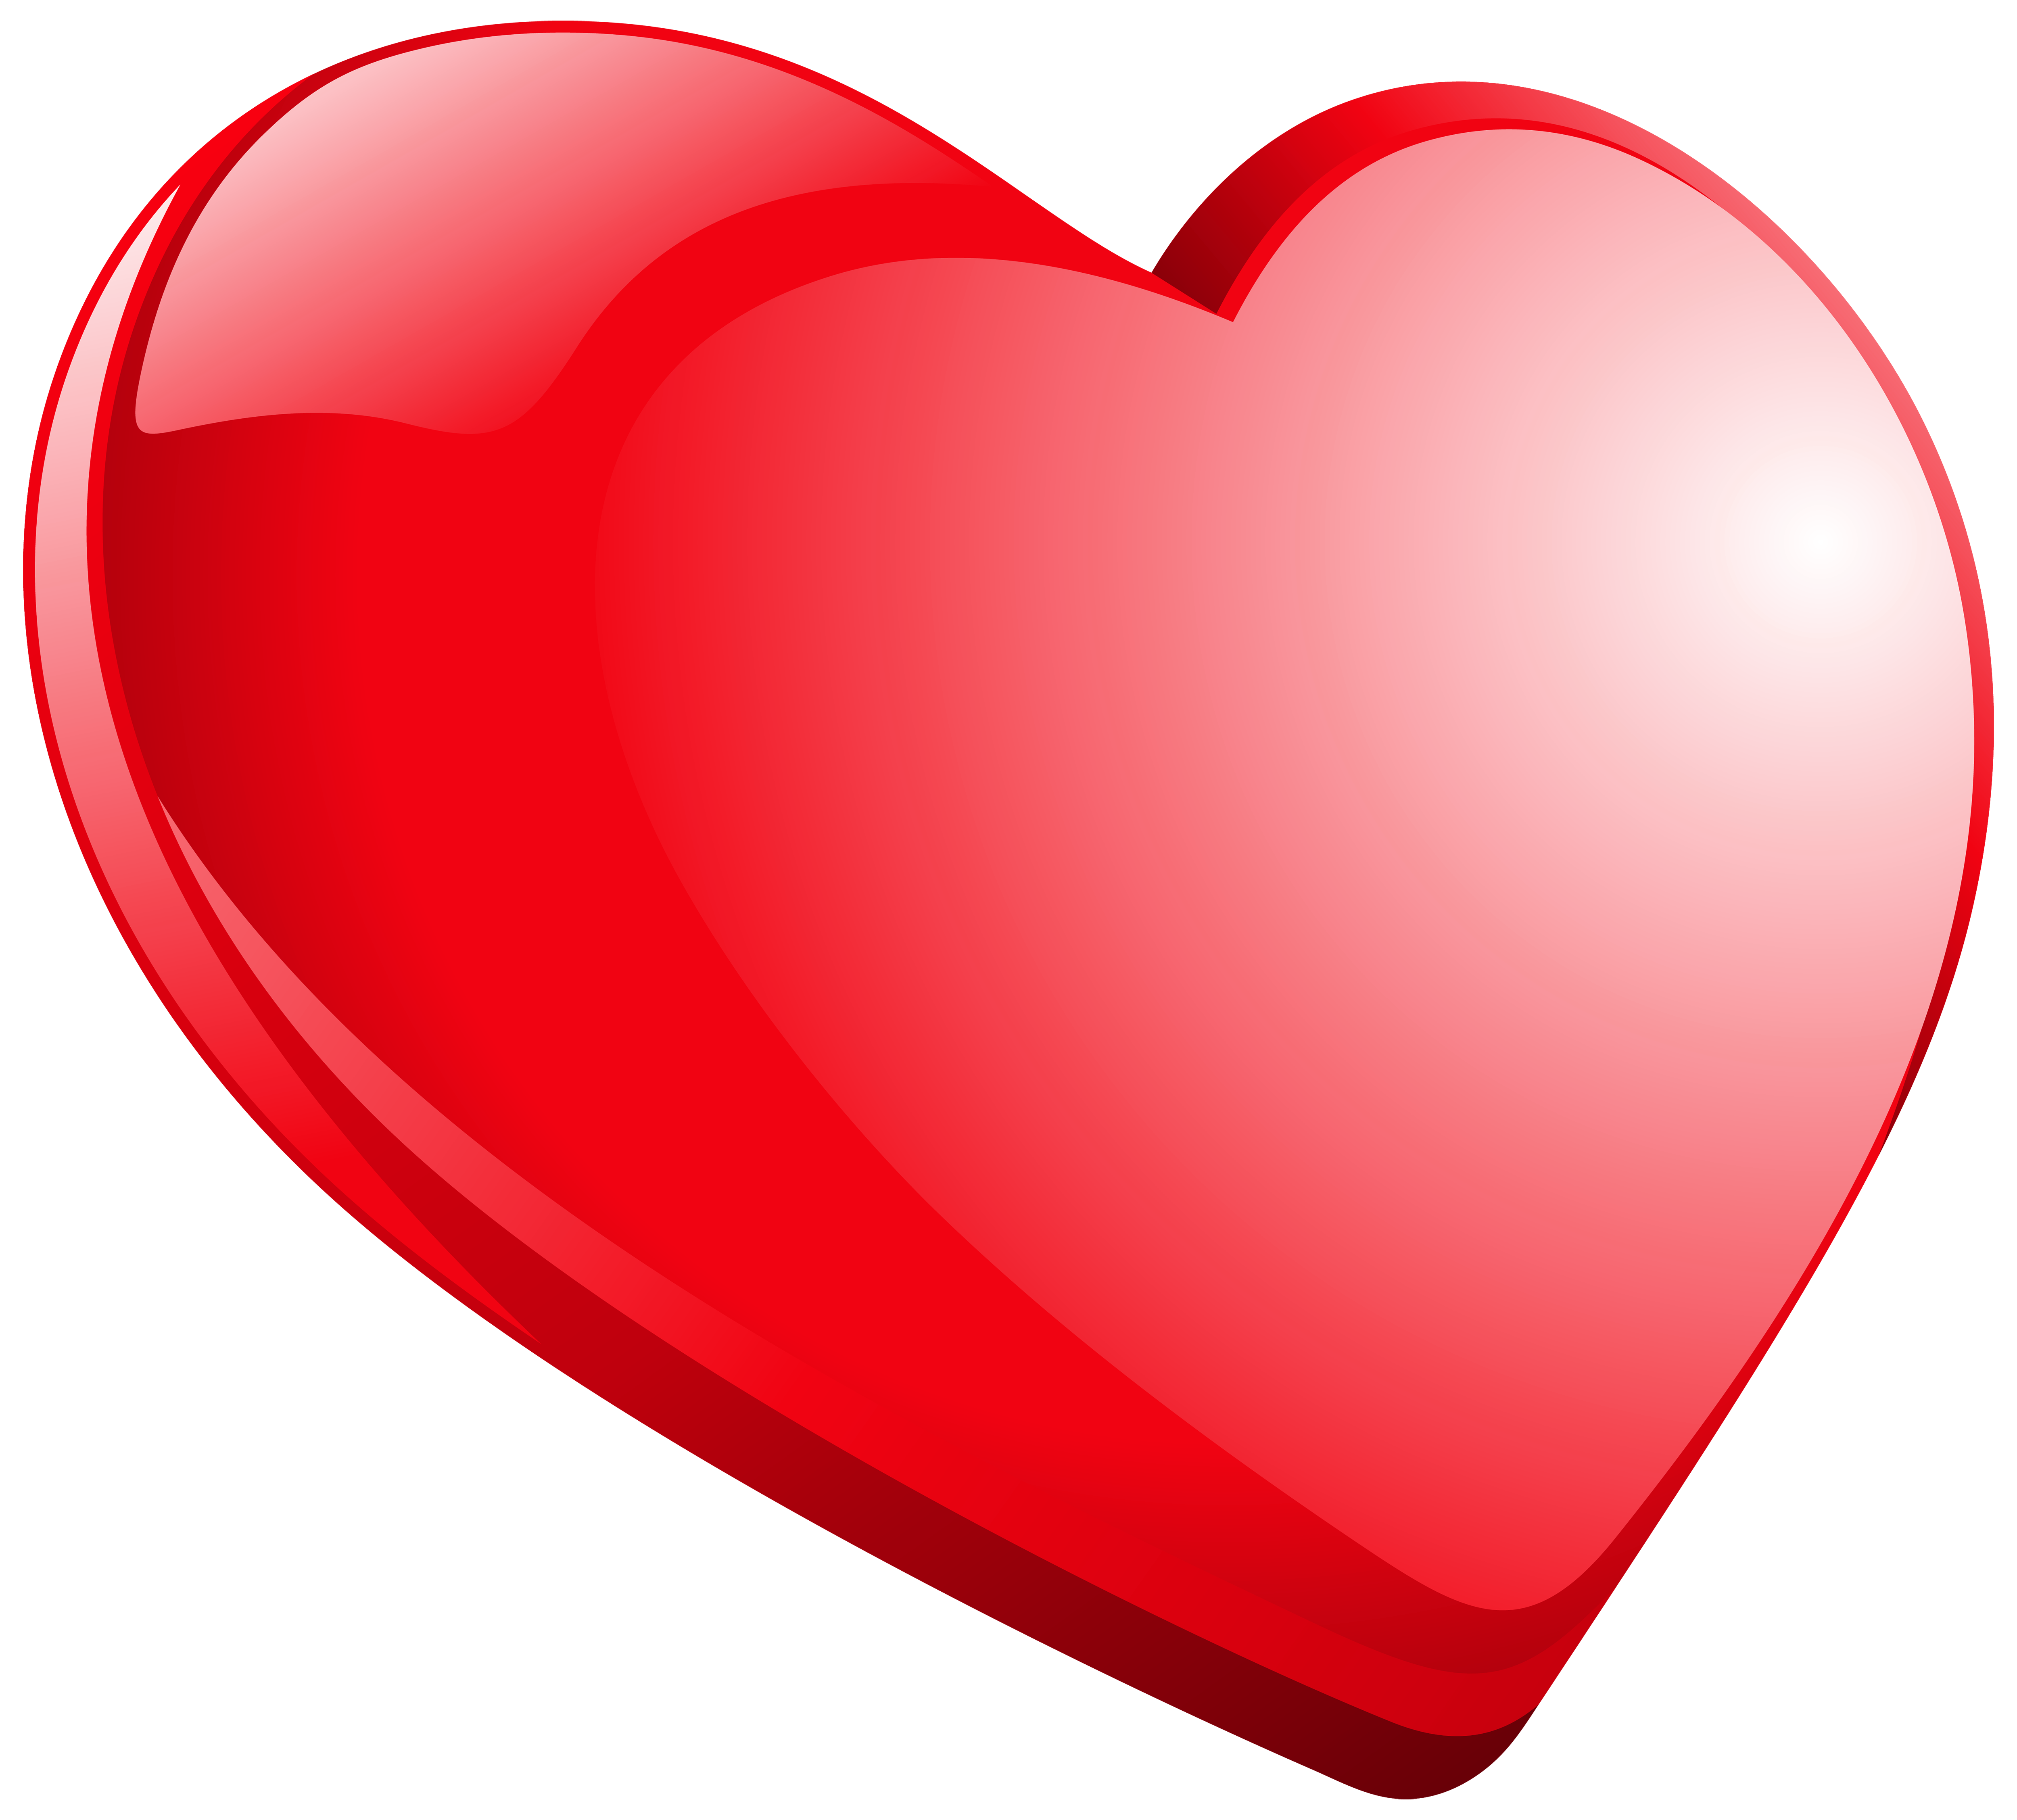 Clipart heart wine. Red png best web